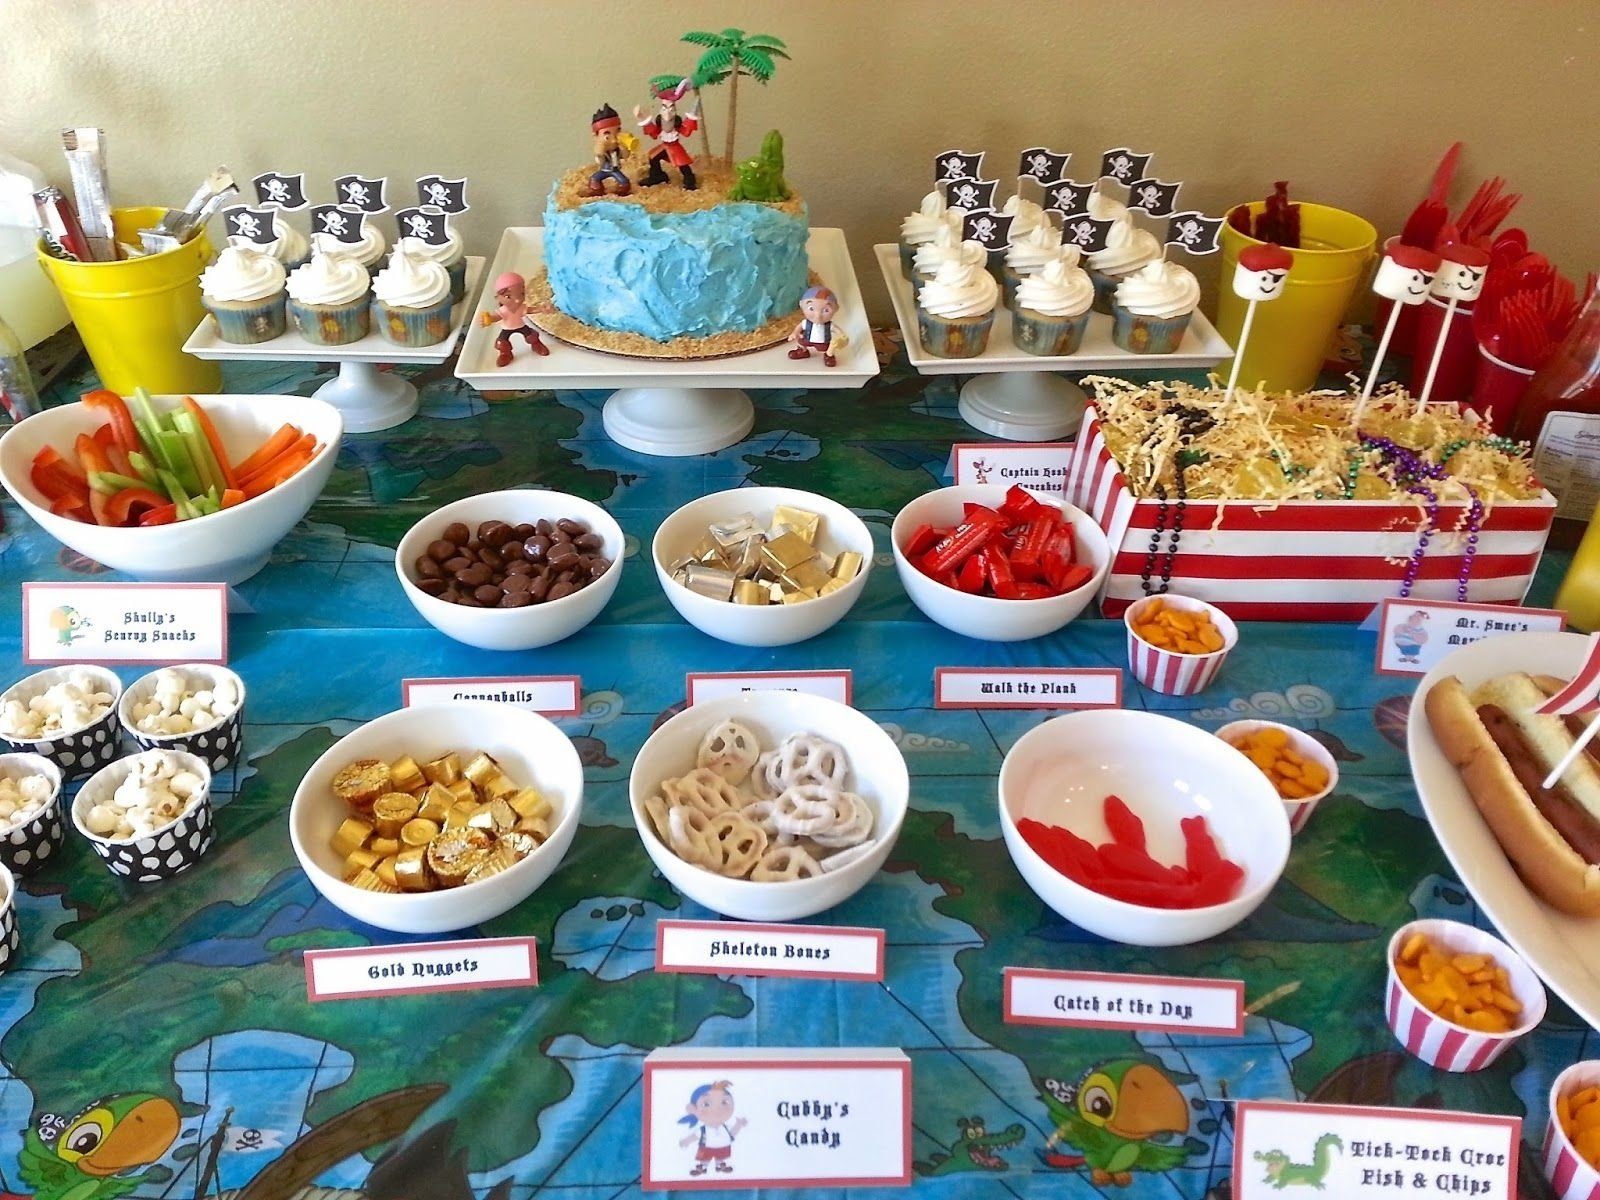 10 Lovable Jake And The Neverland Pirates Decoration Ideas much kneaded jake and the neverland pirates birthday party party 10 2020